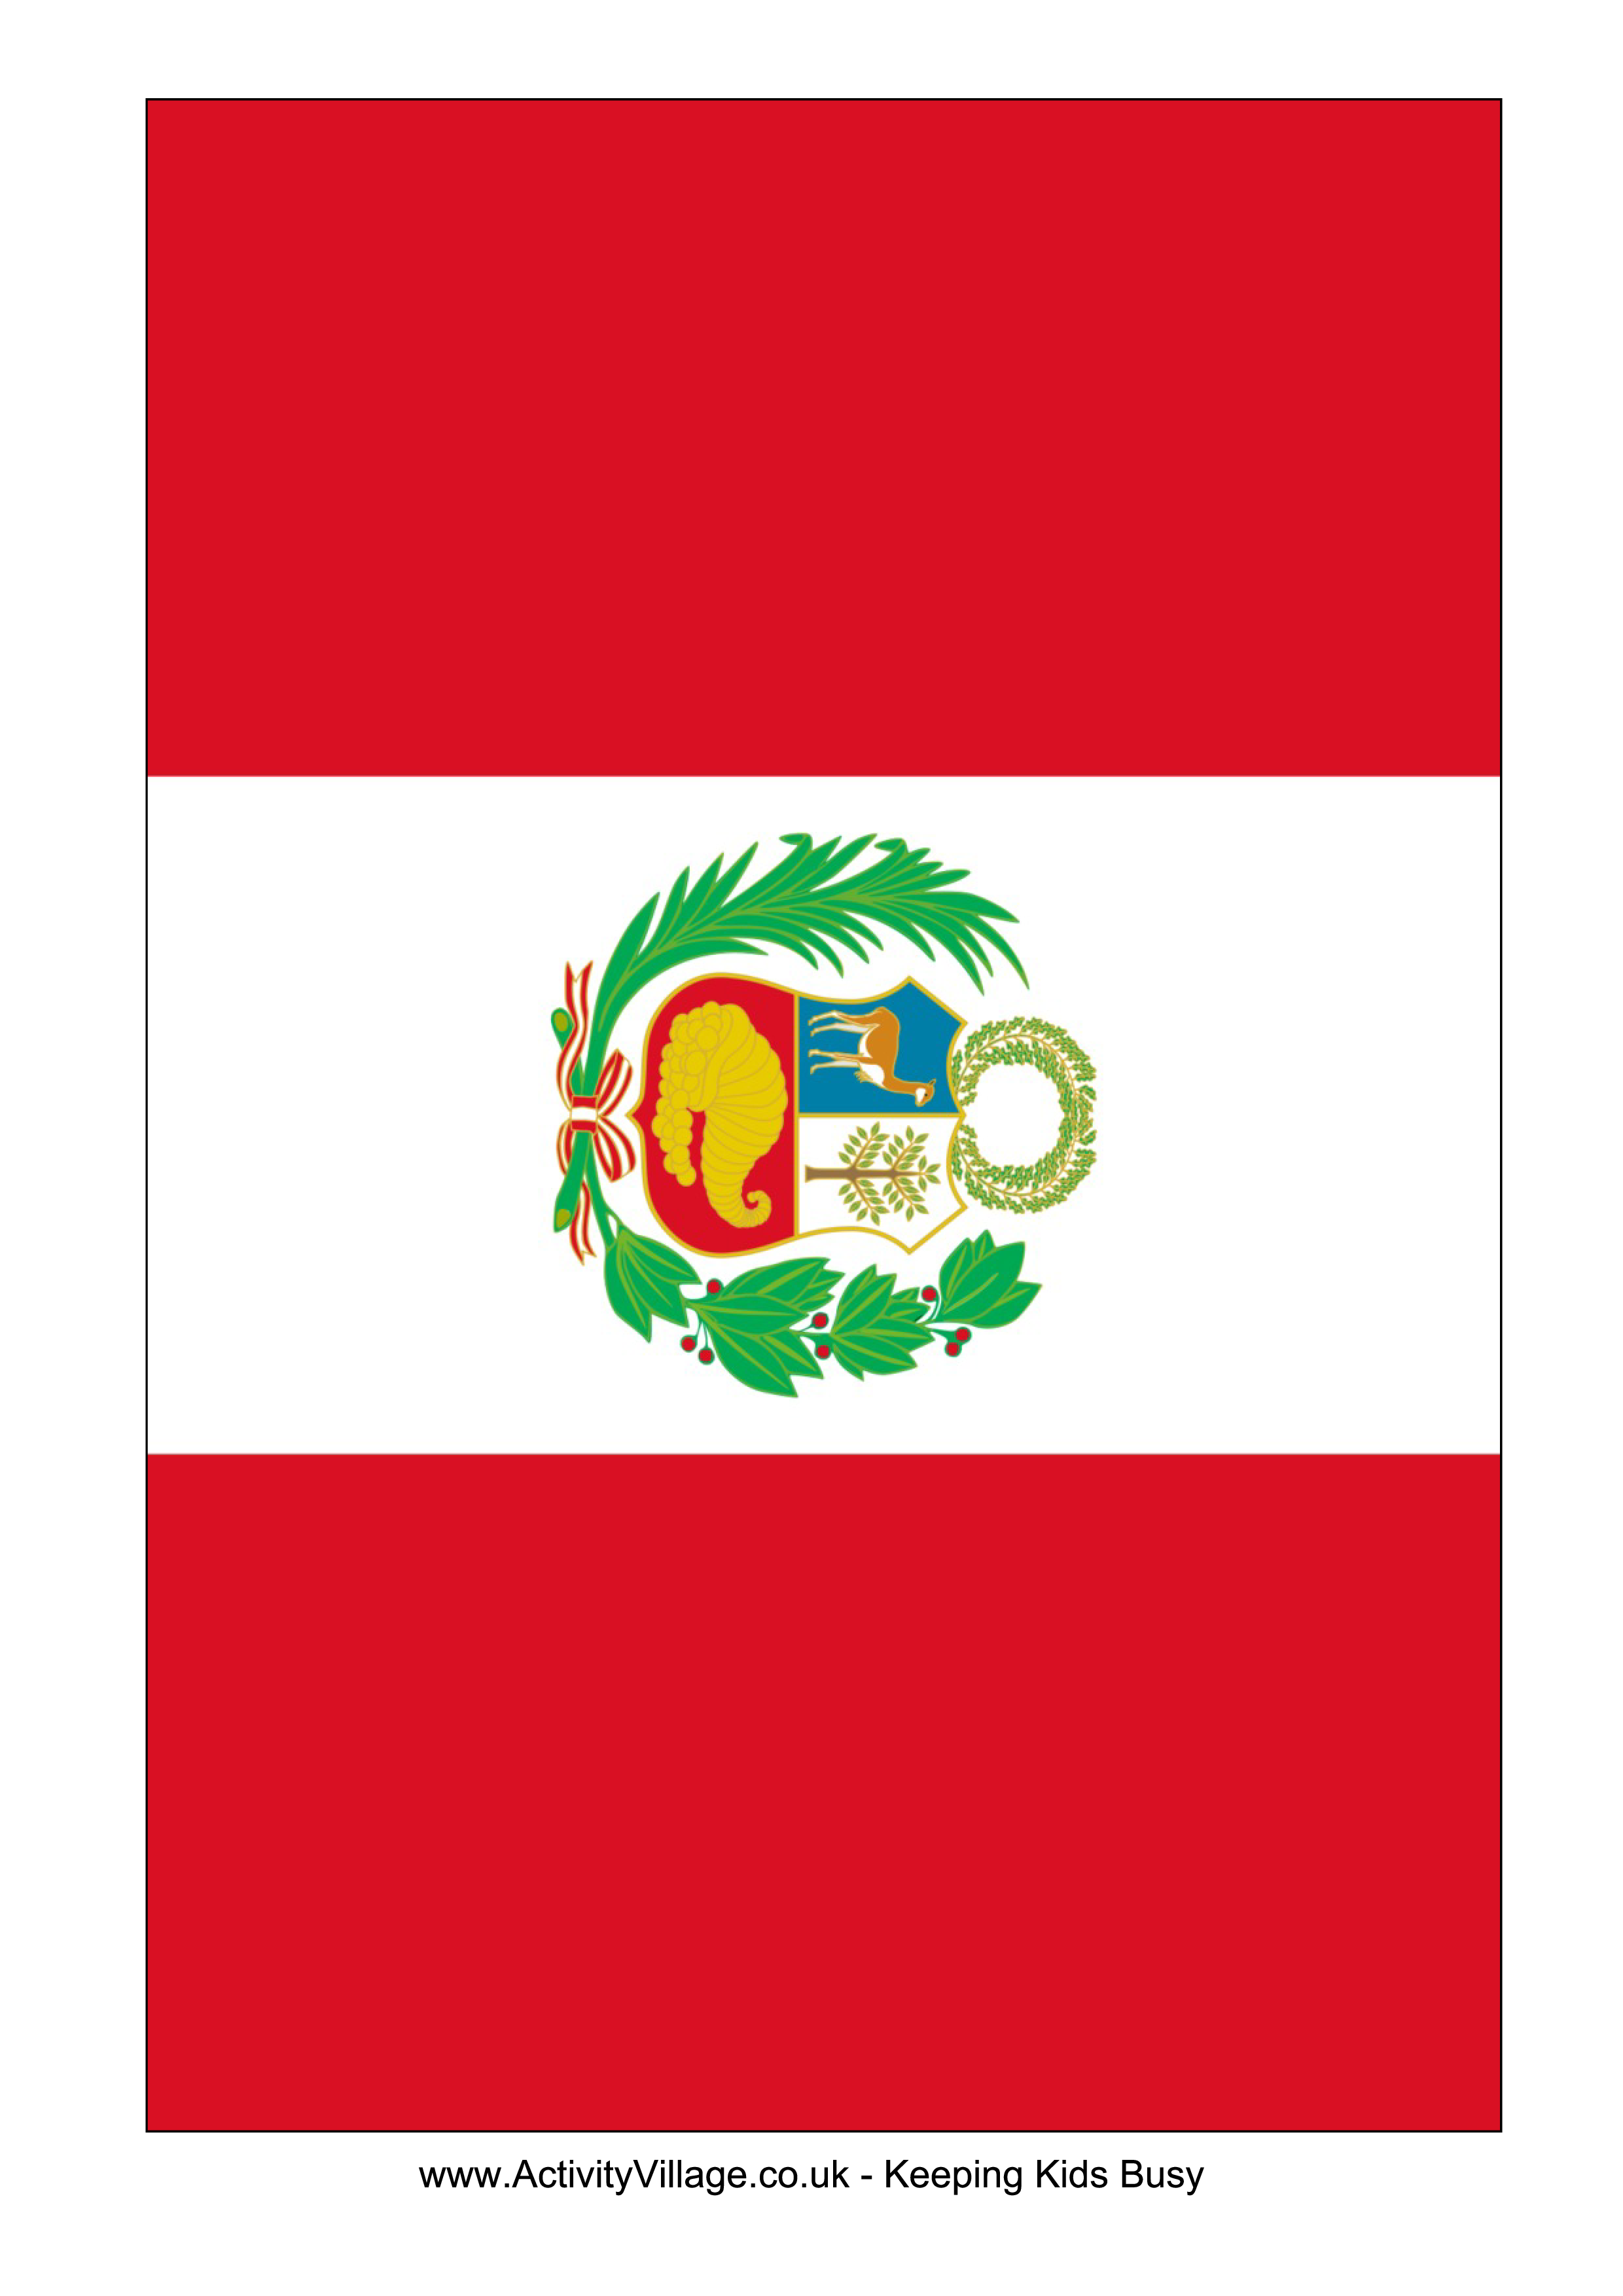 Download This Free Printable Peru Template A4 Flag A5 Flag 8 And 21 Flags On One A4page Easy To Use In Your Own Designs To Make Them Country S Peru Knutselen